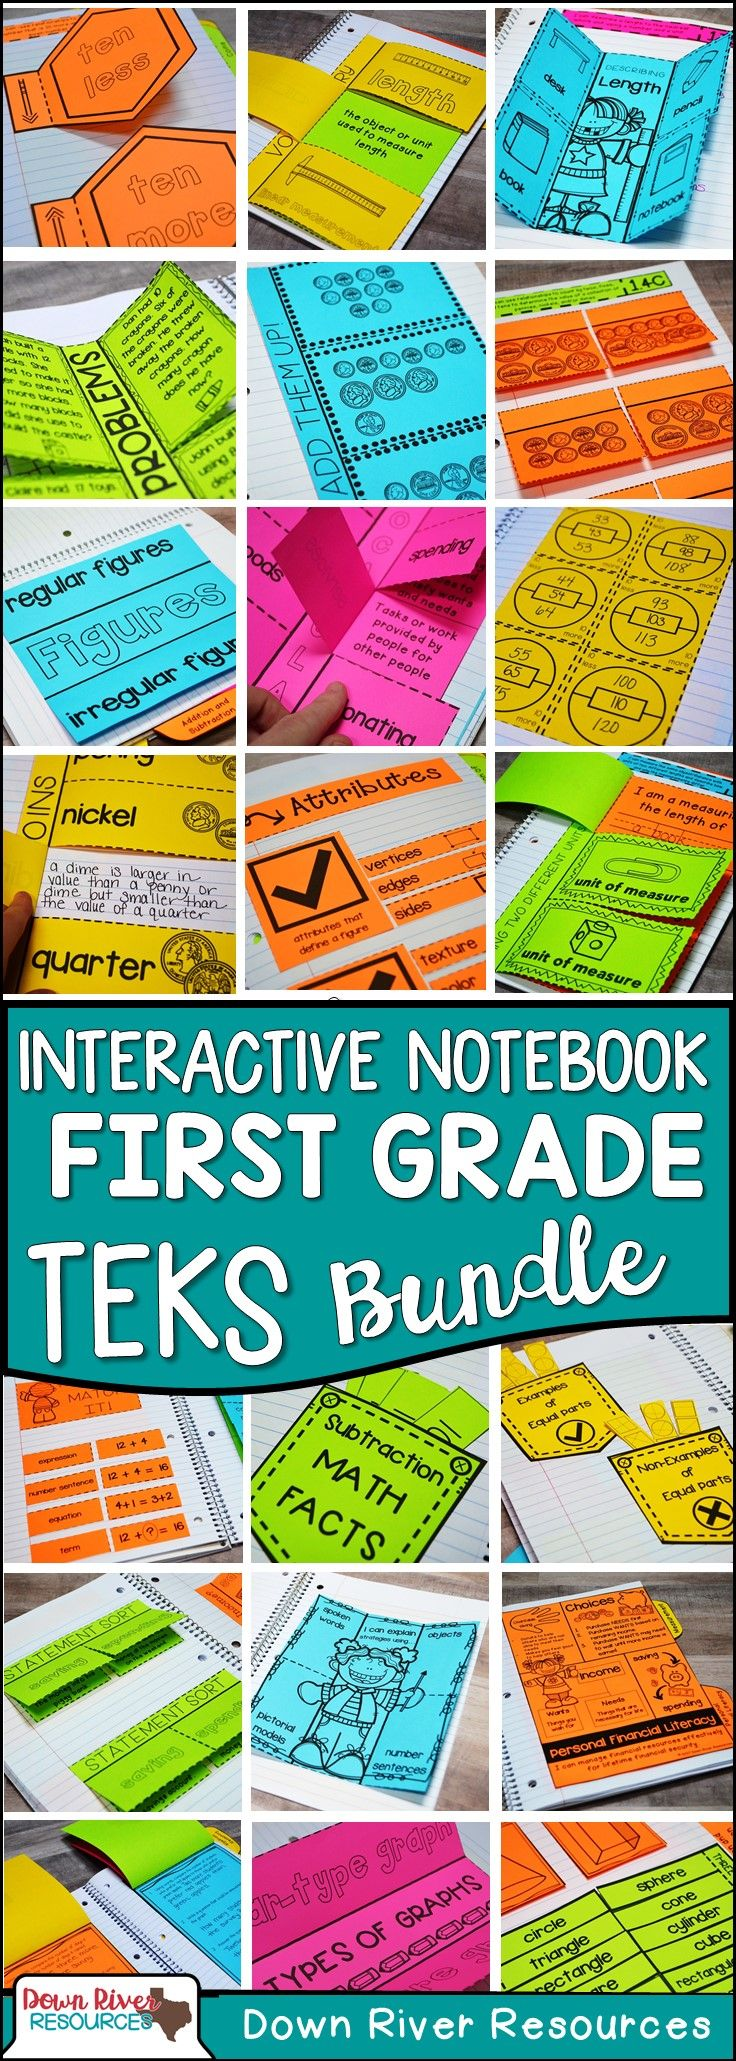 First Grade Math Interactive Notebook | First Grade TEKS- aligned | Math Interactive Notebook First Grade | Topics Include: Whole Numbers, Addition and Subtraction, Algebraic Reasoning, U.S. Coins and Their Values, Geometry, Measurement, Data Analysis, and Personal Financial Literacy.